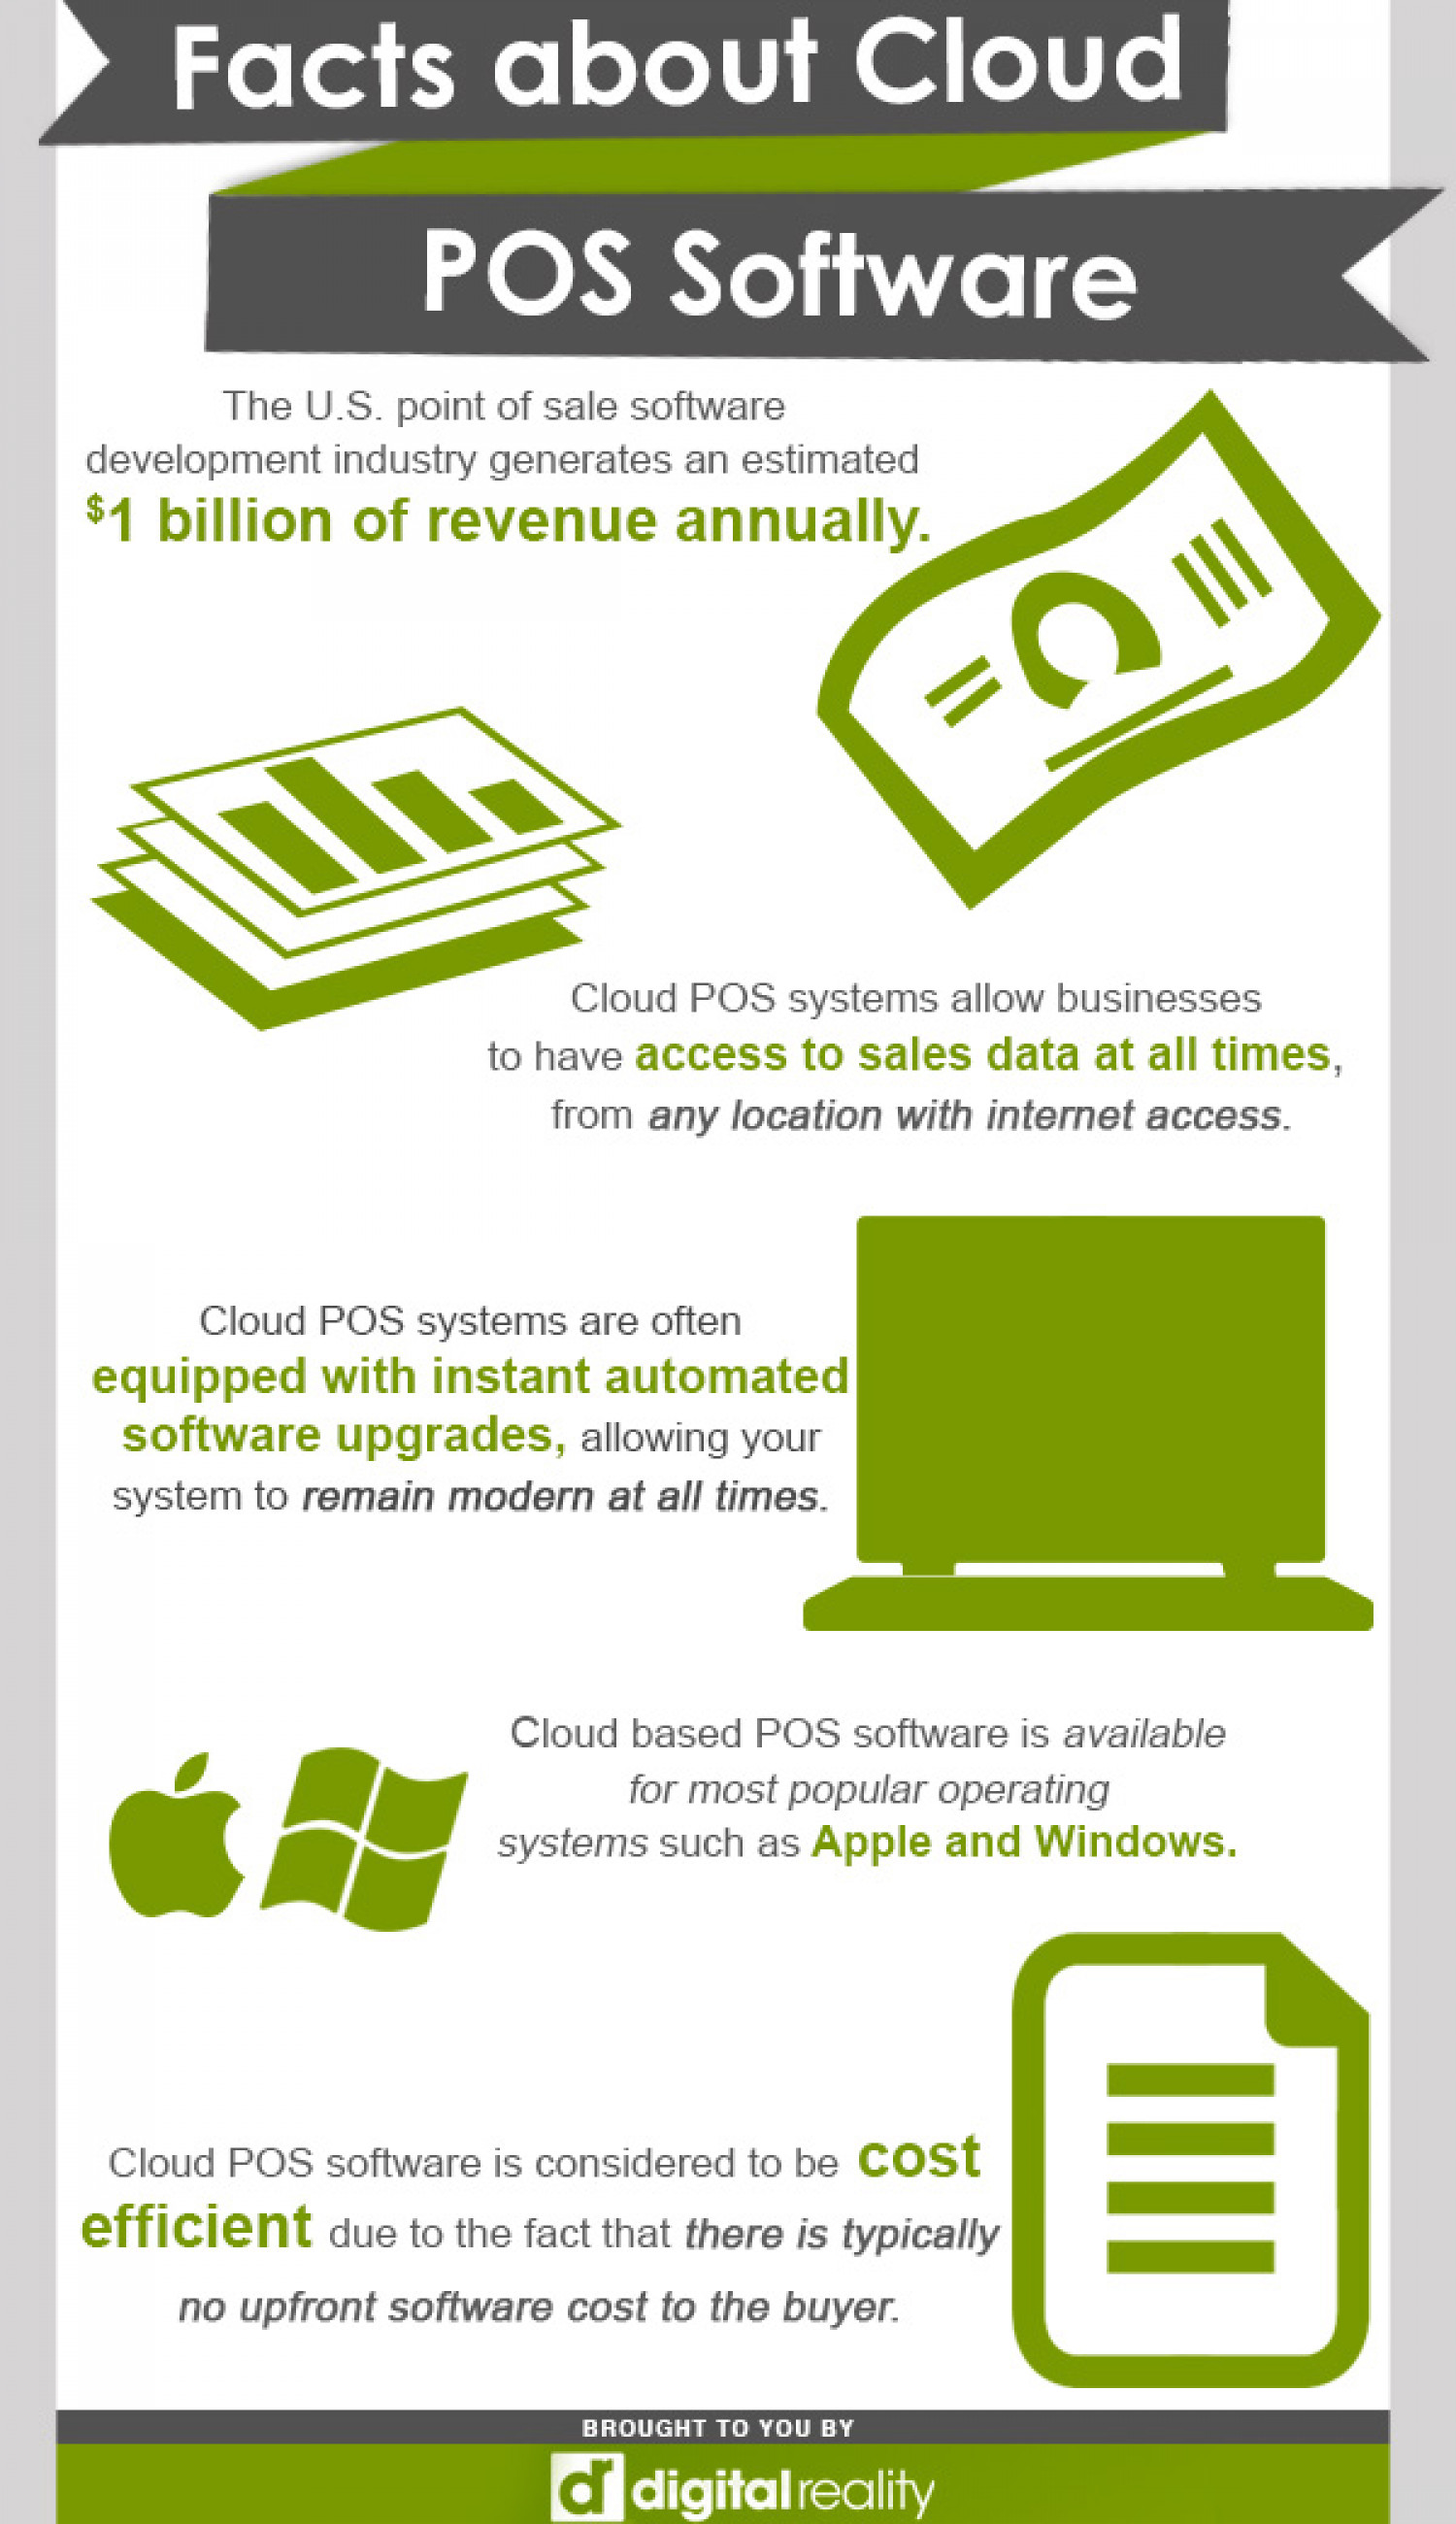 Facts about Cloud POS Software Infographic